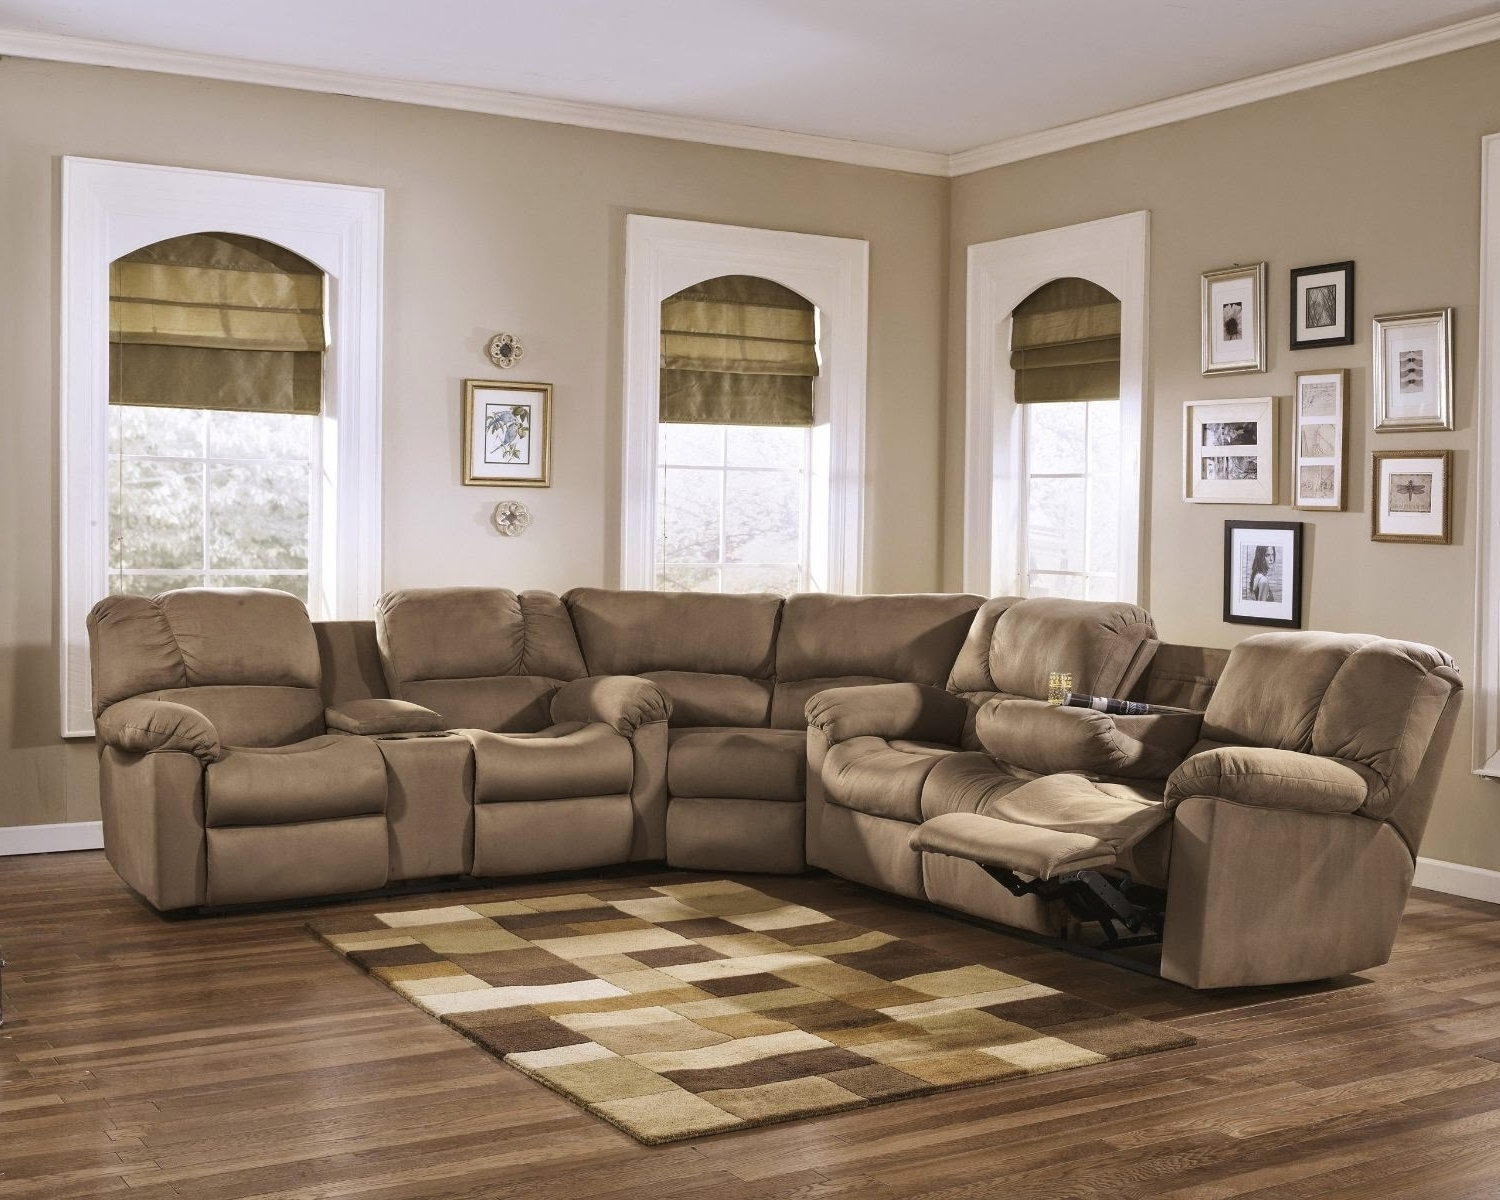 Sectional Sofas With Electric Recliners With Regard To Current Reclining Sofa Leather Recliner Sofa Deals Sectional Sofas With (View 19 of 20)